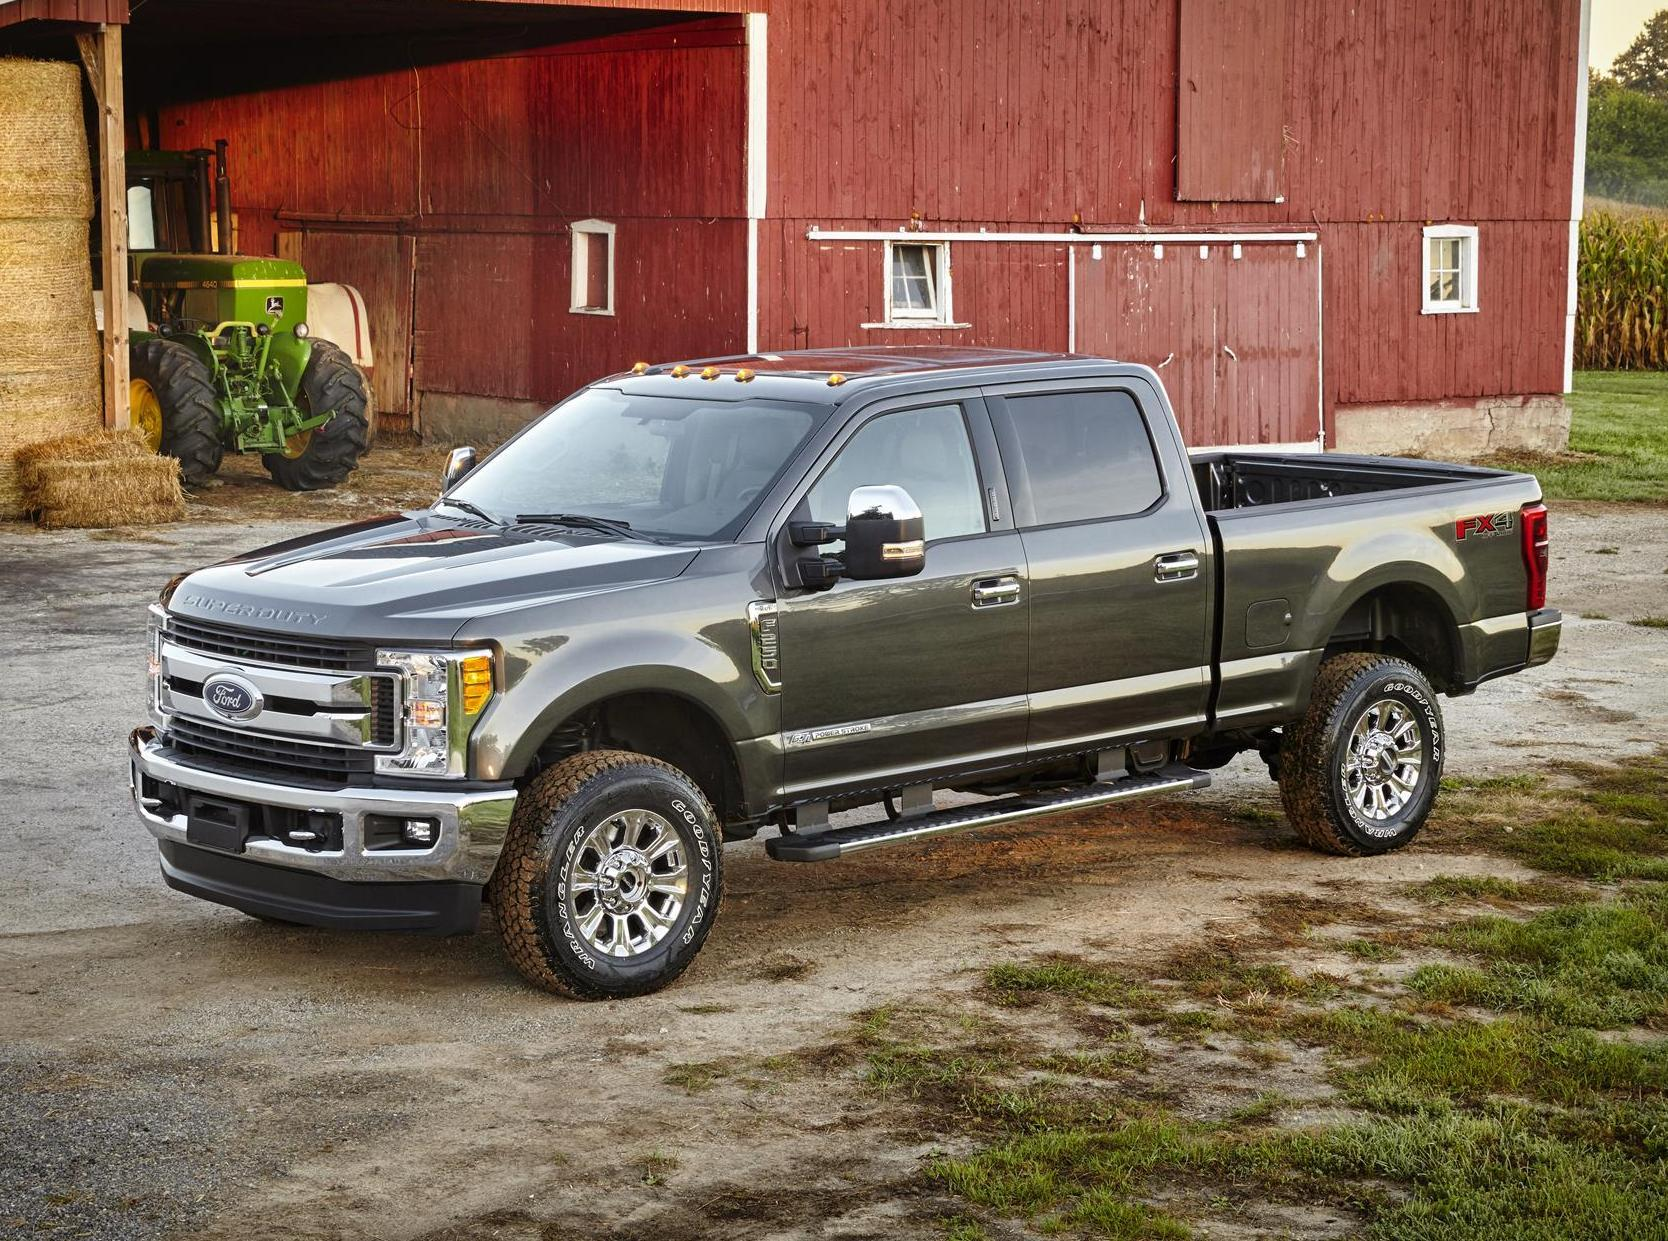 Ford images 2017 Ford F 250 FX4 Super Duty Crew Cab. HD wallpaper ...